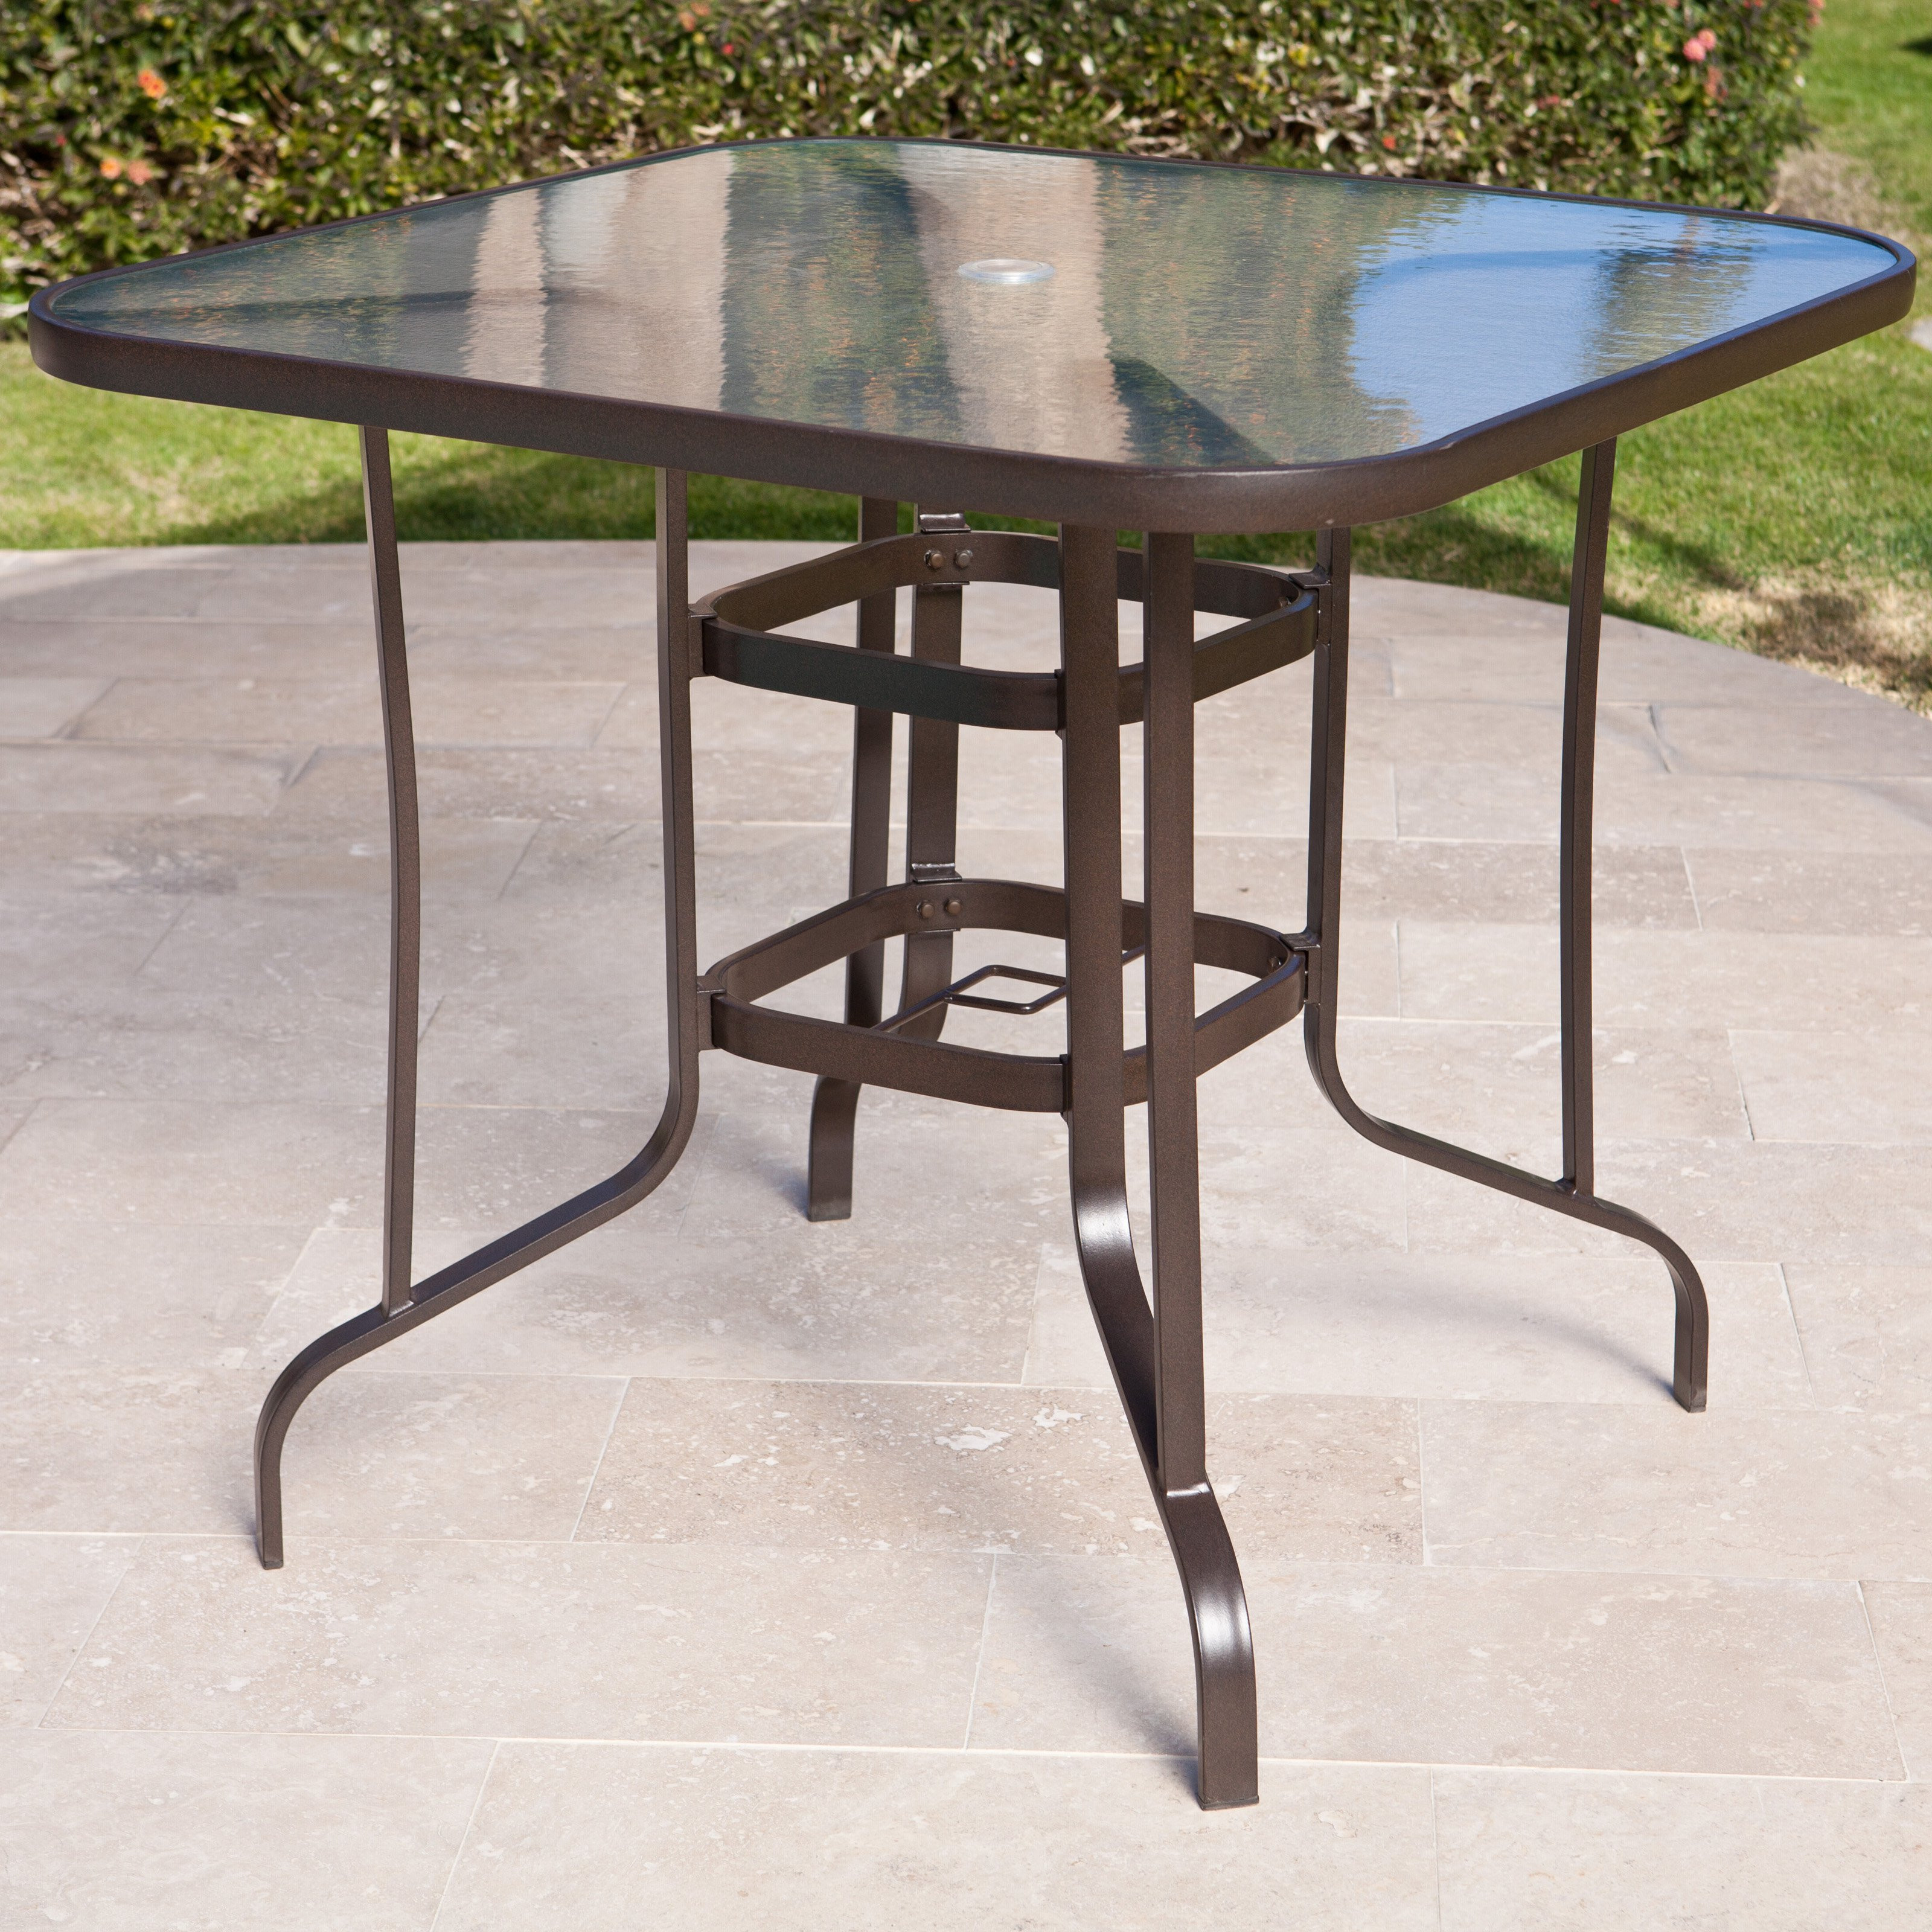 Best ideas about Tall Patio Table . Save or Pin Coral Coast Del Rey Balcony Height Outdoor Dining Table Now.